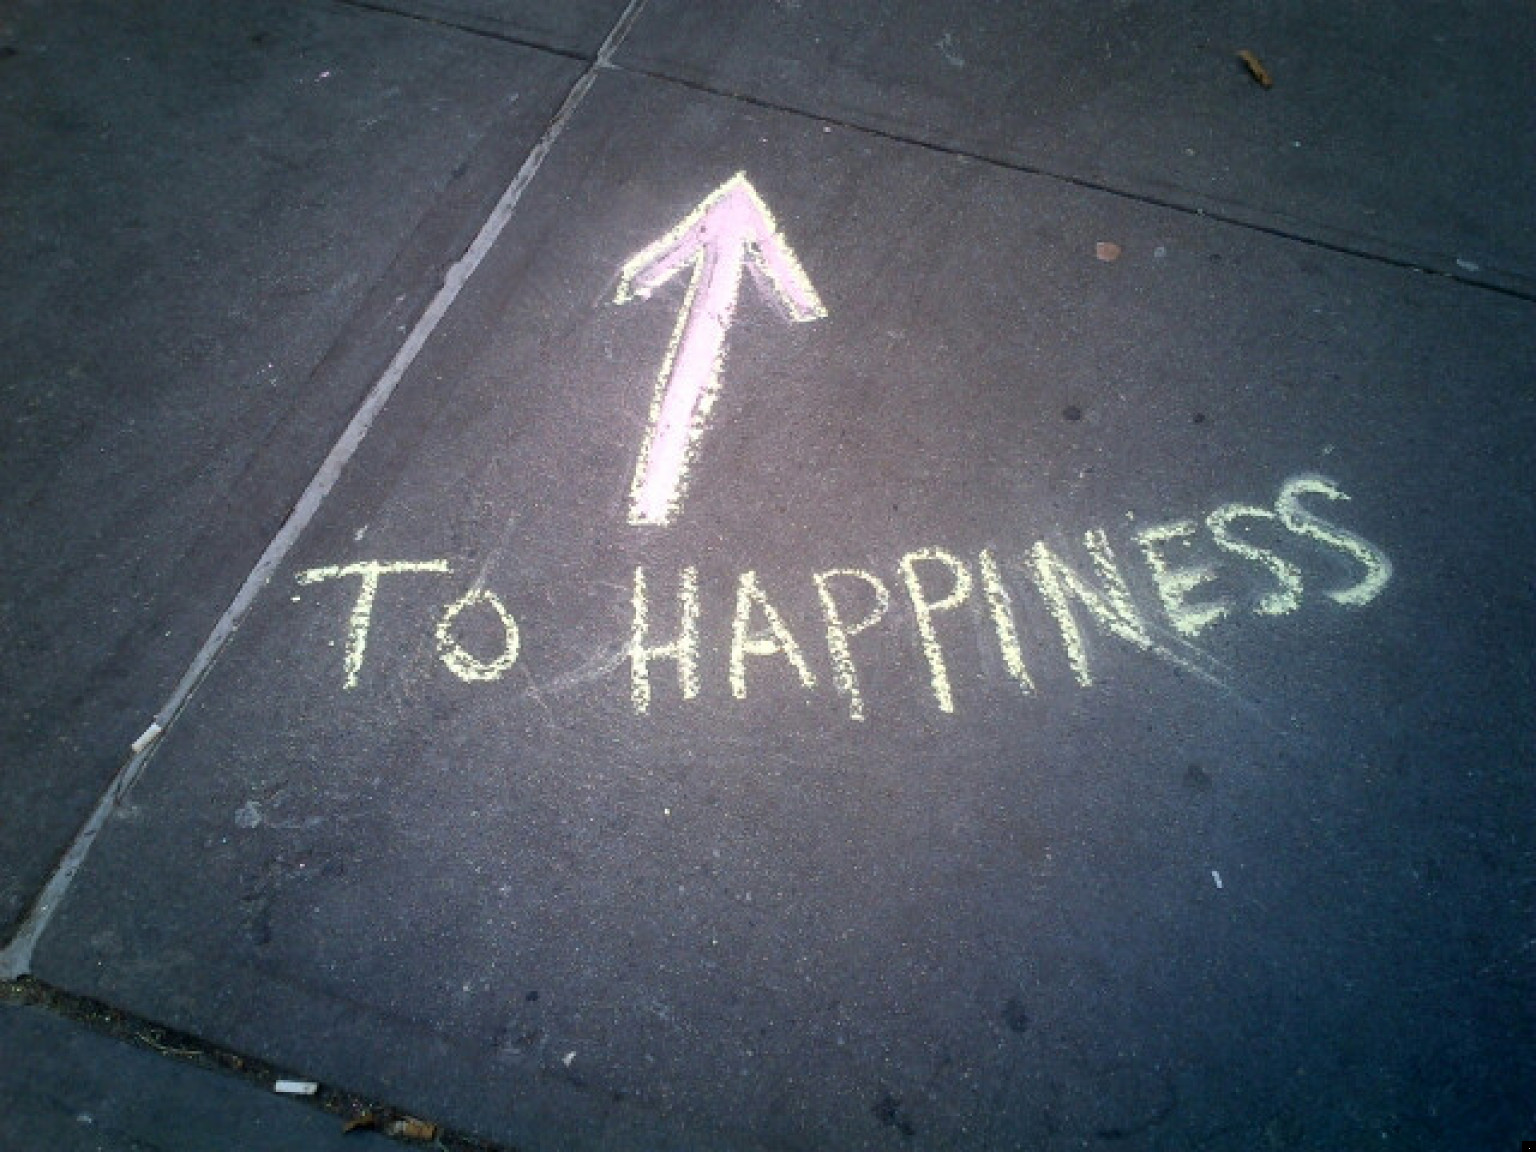 Happiness Images In Sidewalk Art, Stickers, Magnets And ...